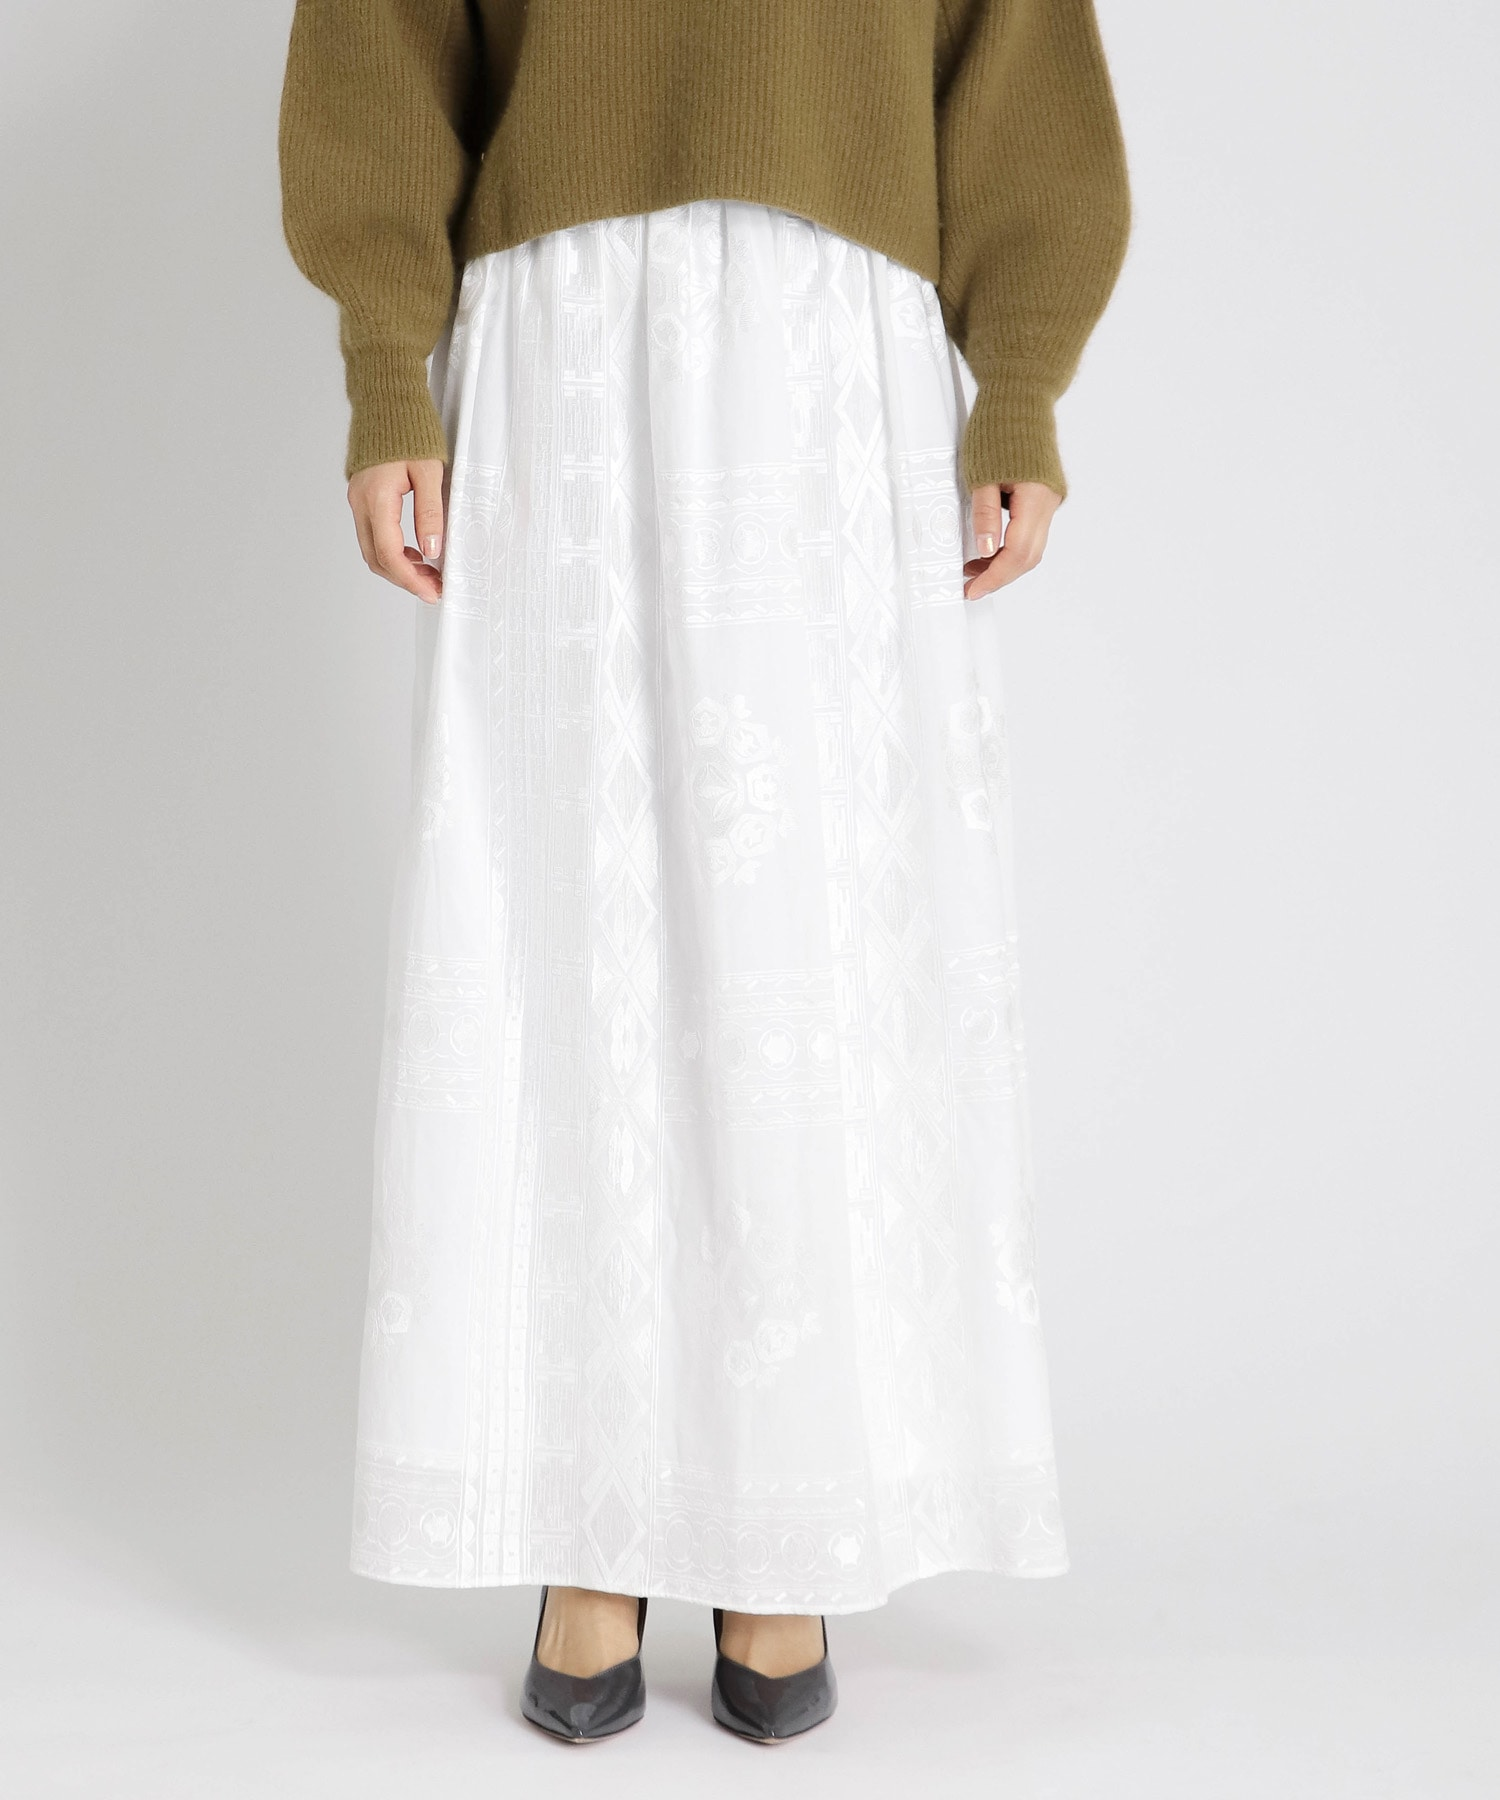 embroidery structure skirt